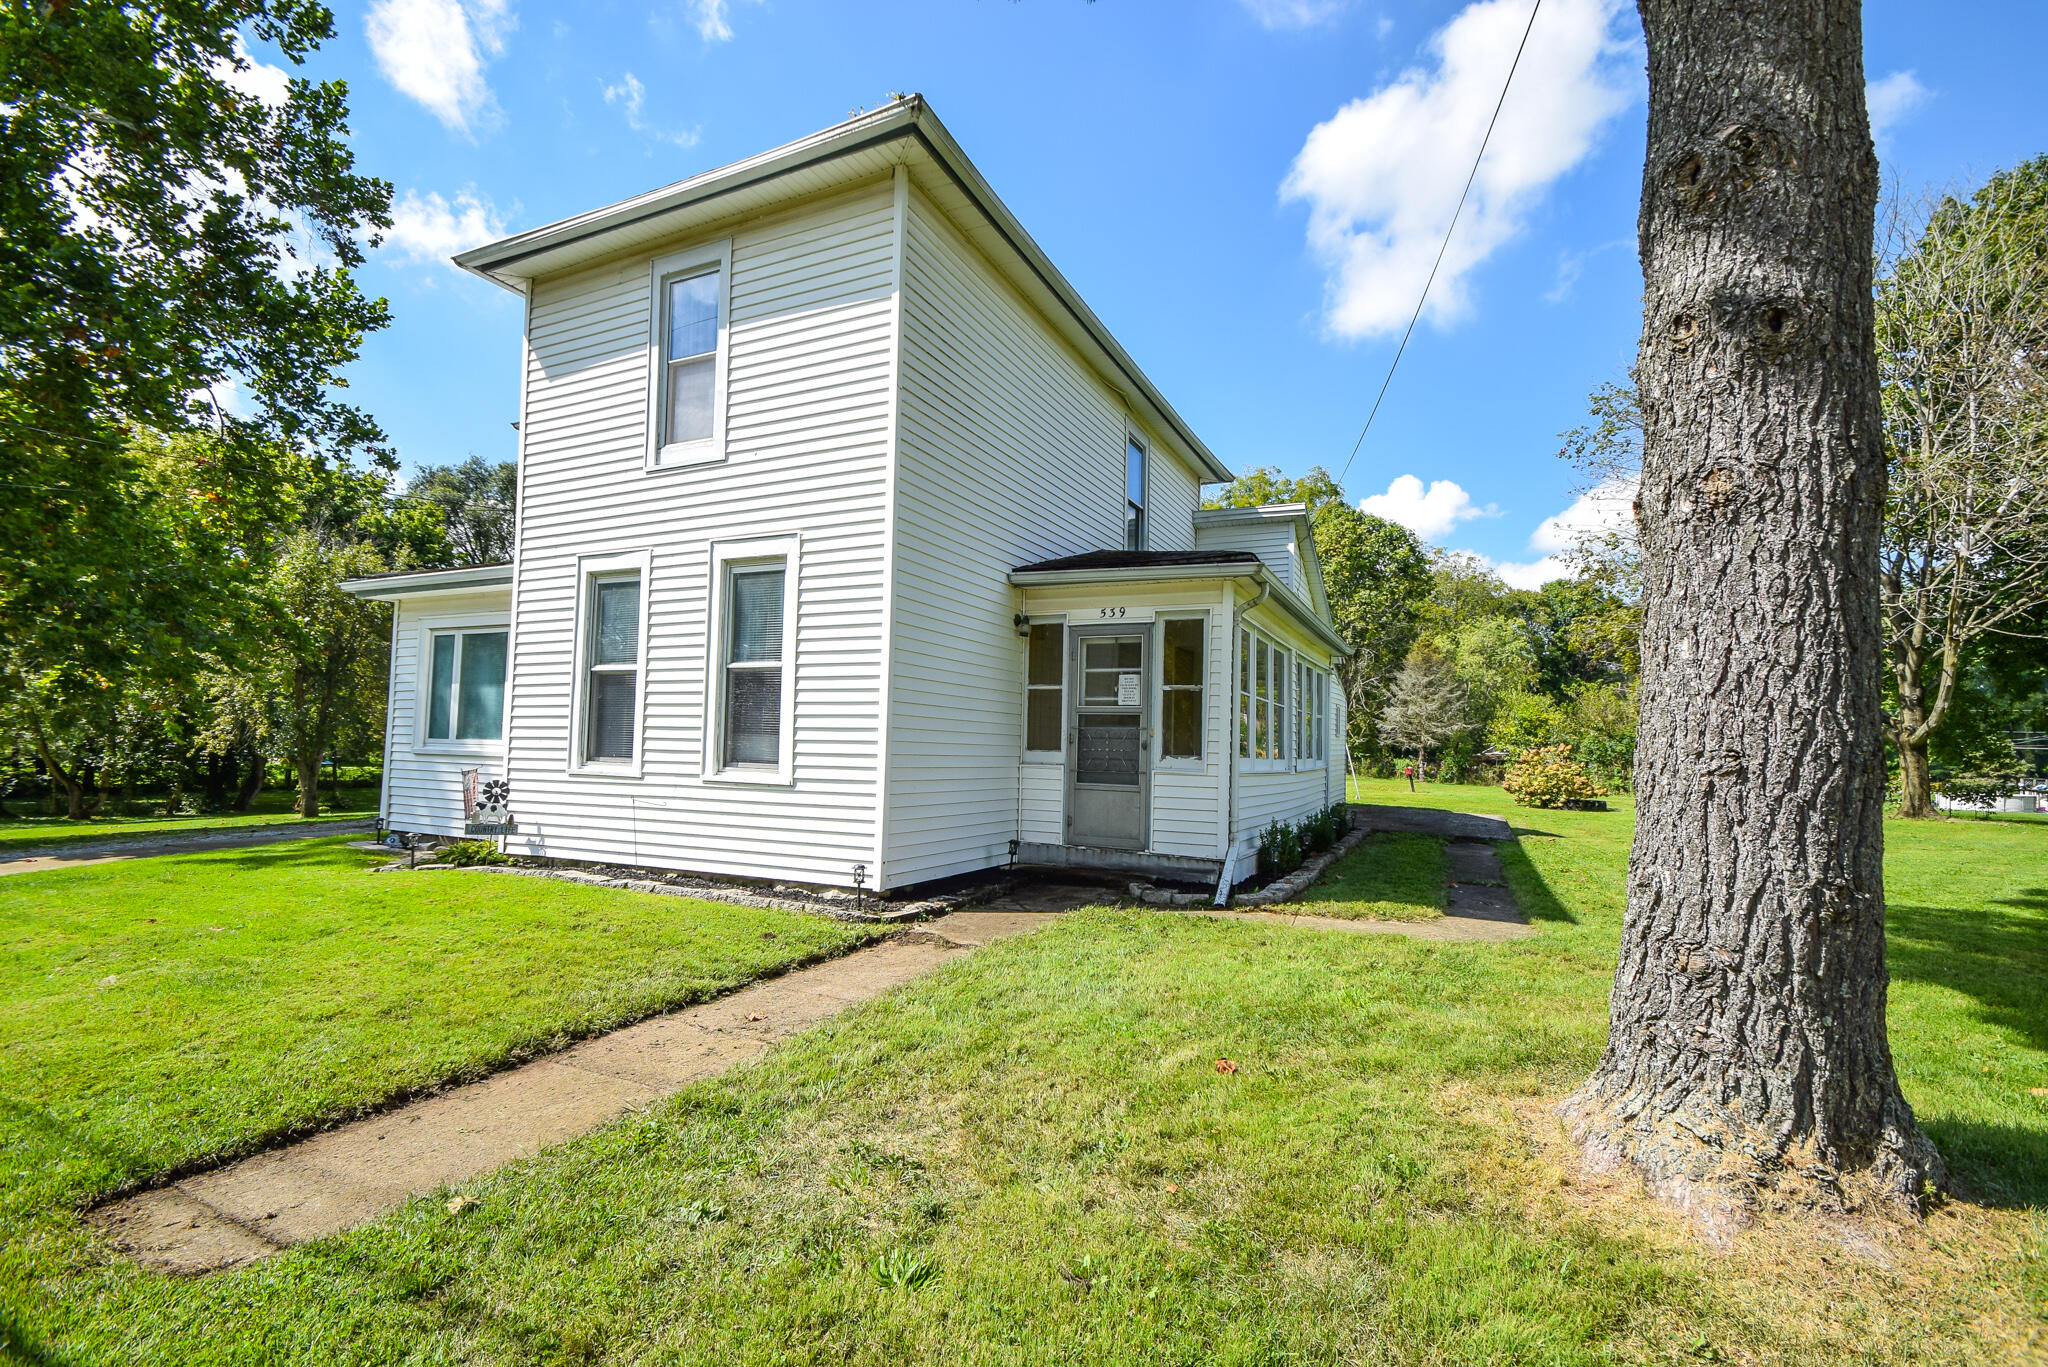 Photo 1 for 539 Old Mill Rd Springfield, OH 45506